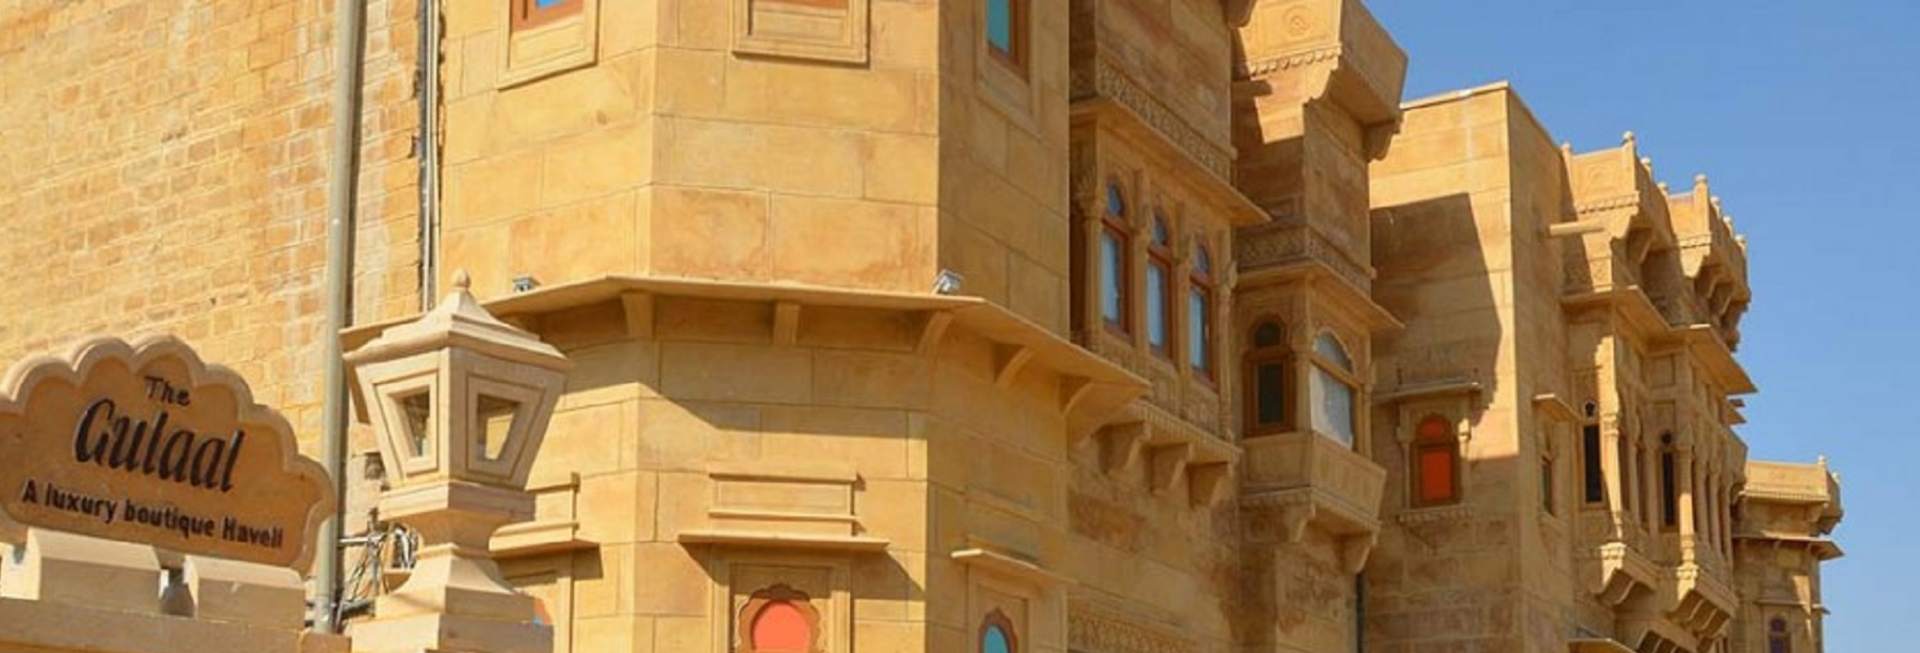 The Gulaal, Jaisalmer